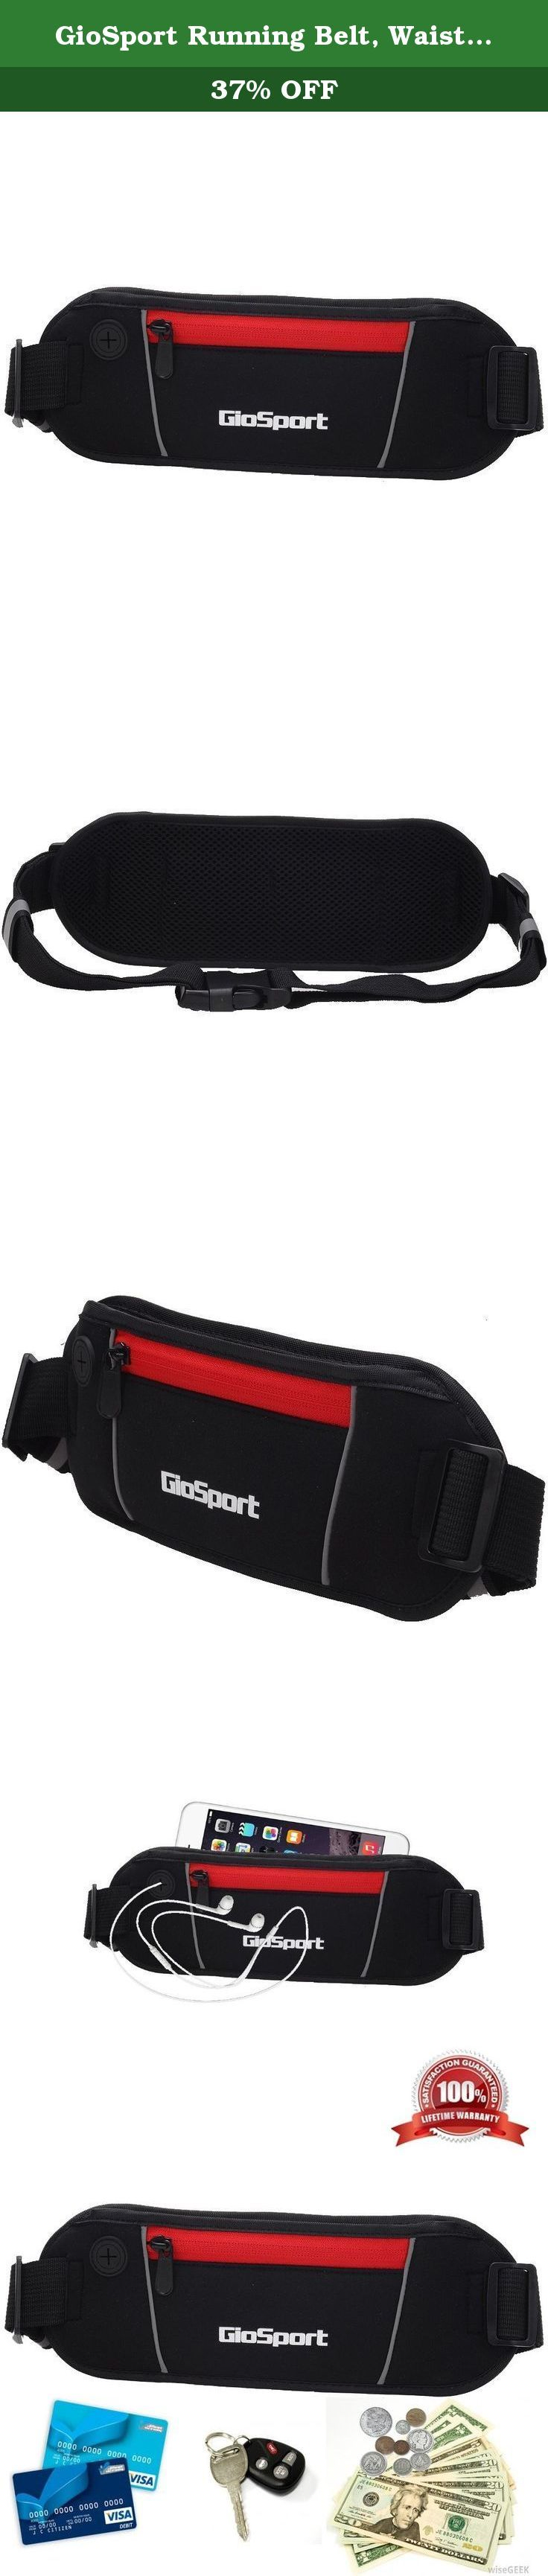 GioSport Running Belt, Waist Pack, Best Sports Belt/Pouch for Runners, Running Bag, Fanny Pack, Travel Money Belt, Compact for Carrying All Your Necessities, Lifetime Guarantee. The GioSport Running Belt is one of those cool, slim, flat fanny packs that you can use as a running buddy, runners belt, waist bag for women and men and also as a bike fanny pack or walking pouch. Manufactured with high quality neoprene material in front and breathable mesh material on the back side with…